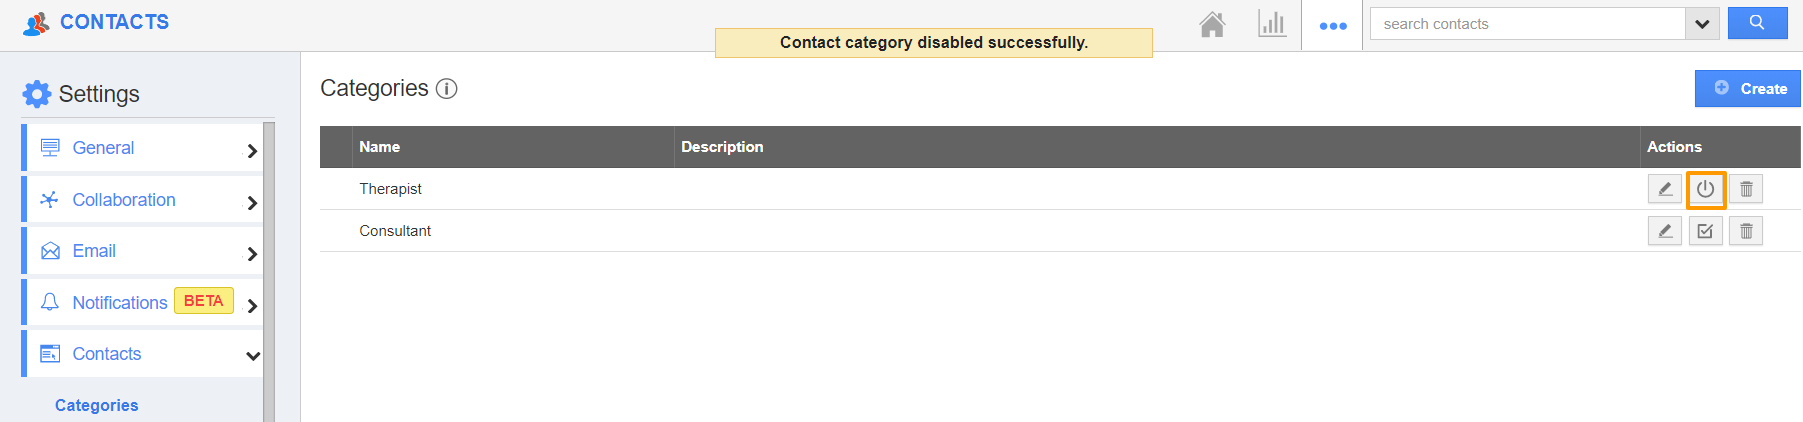 Disabled Category